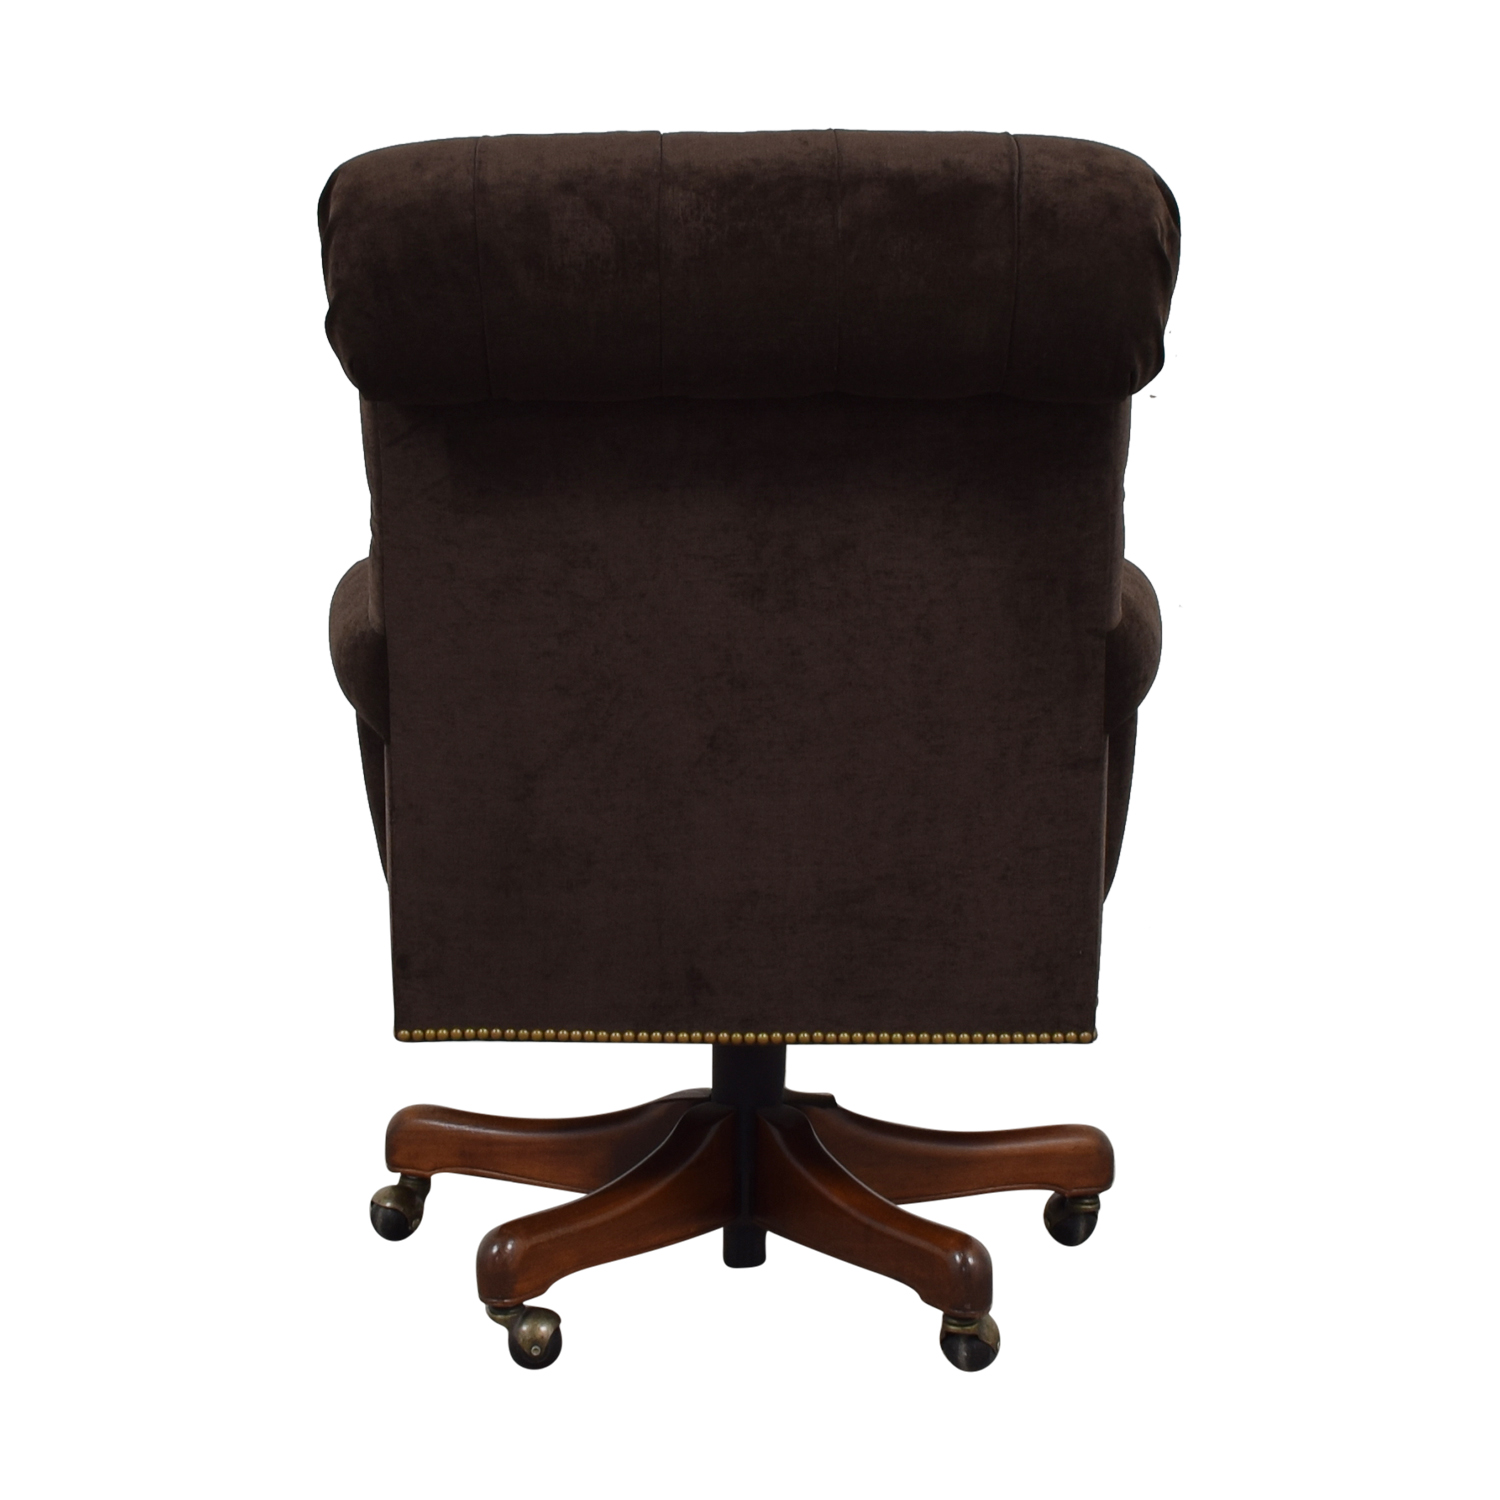 Furniture Masters Furniture Masters Brown Nailhead Tufted Desk Chair on Castors